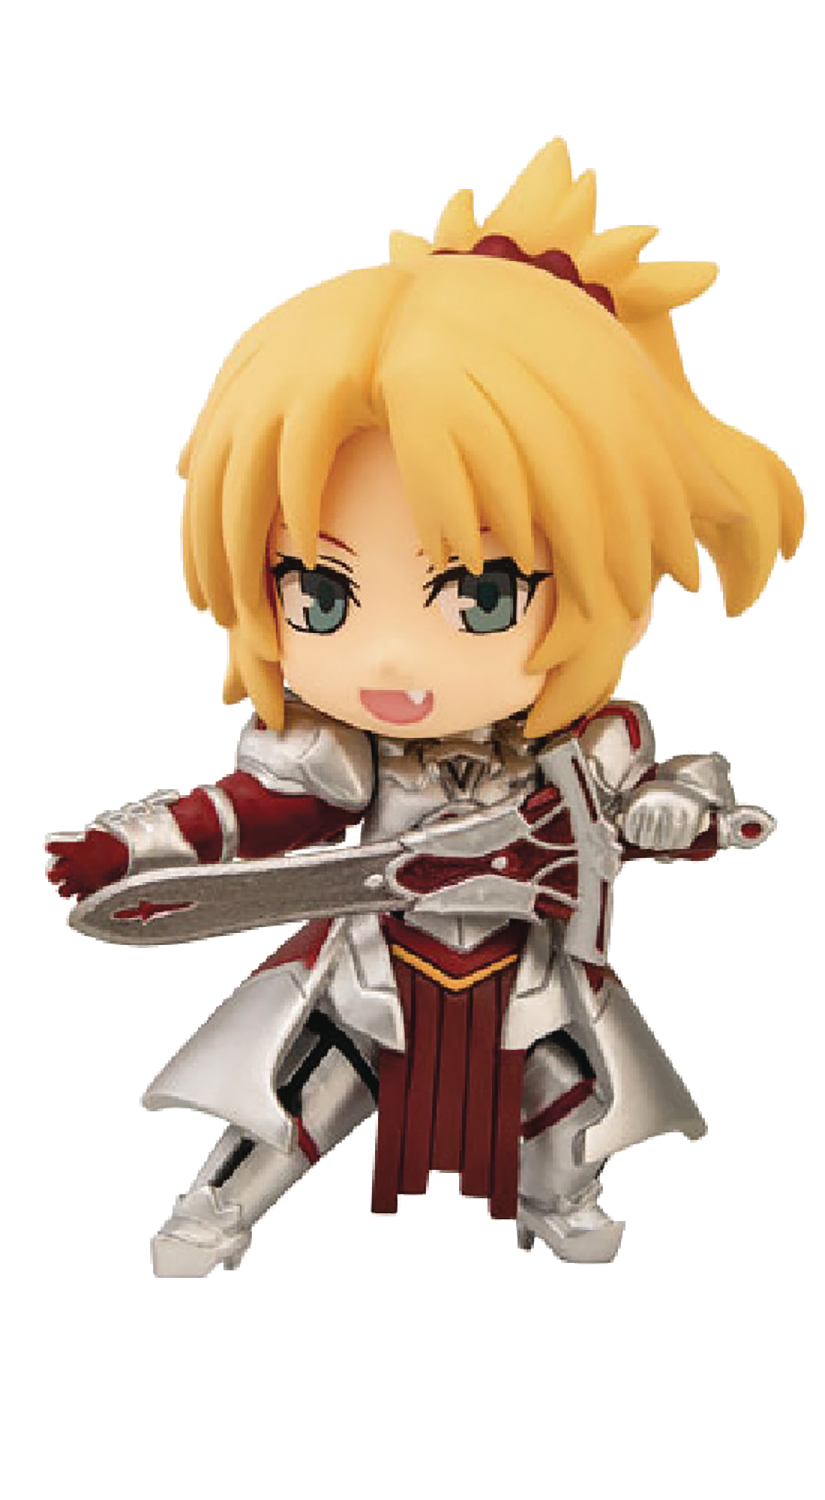 FATE APOCRYPHA NIITENGO PREMIUM SABER OF RED FIG